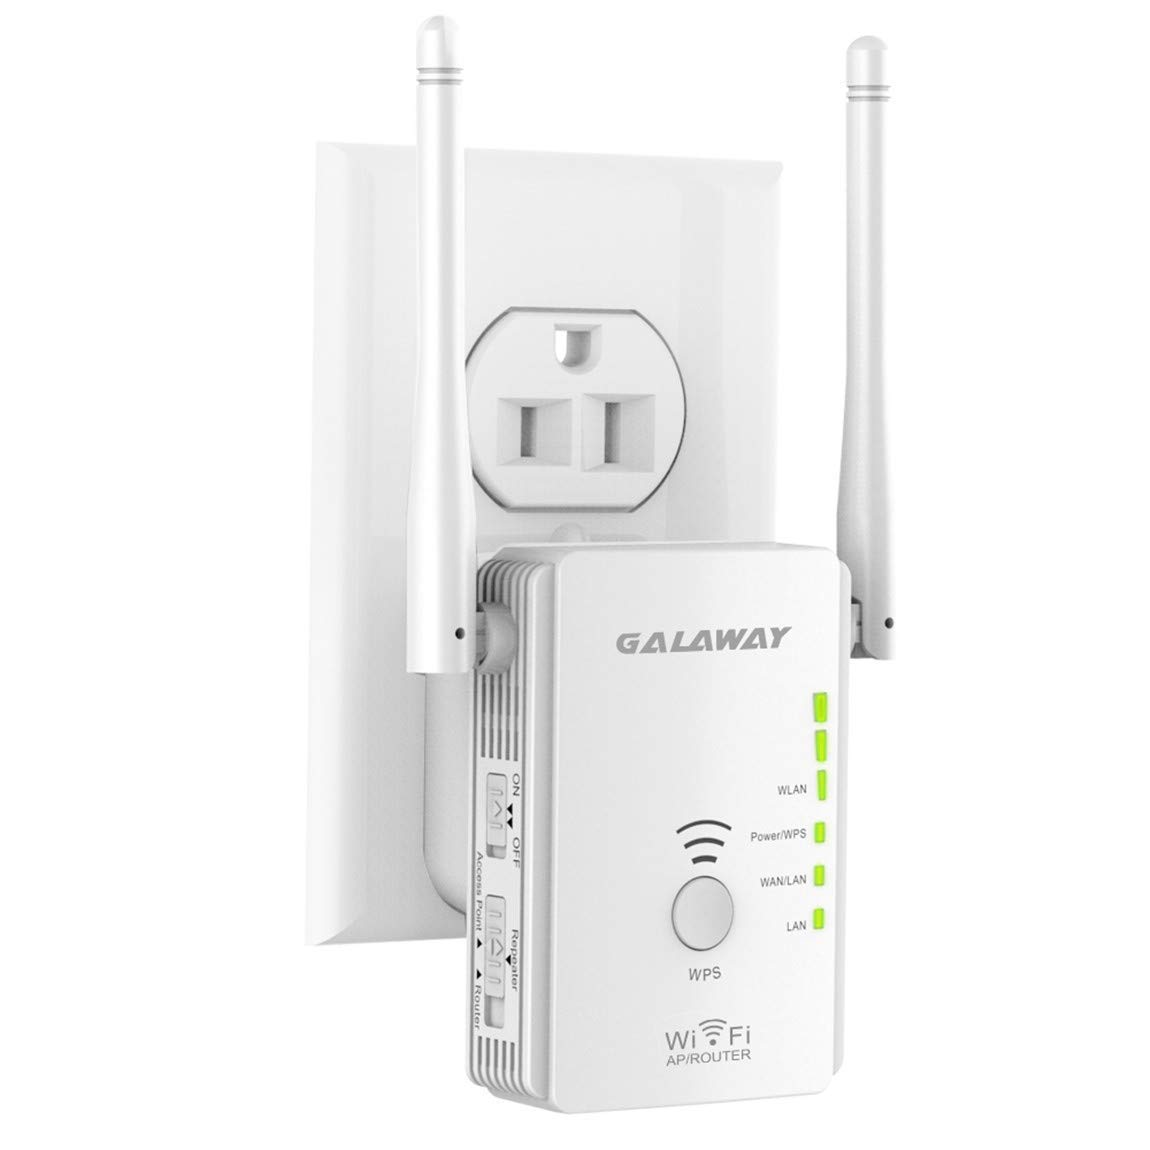 GALAWAY 300Mbps Mini WiFi Range Extender 360 Degree Full Coverage External Antenna Range Extender by GALAWAY-US